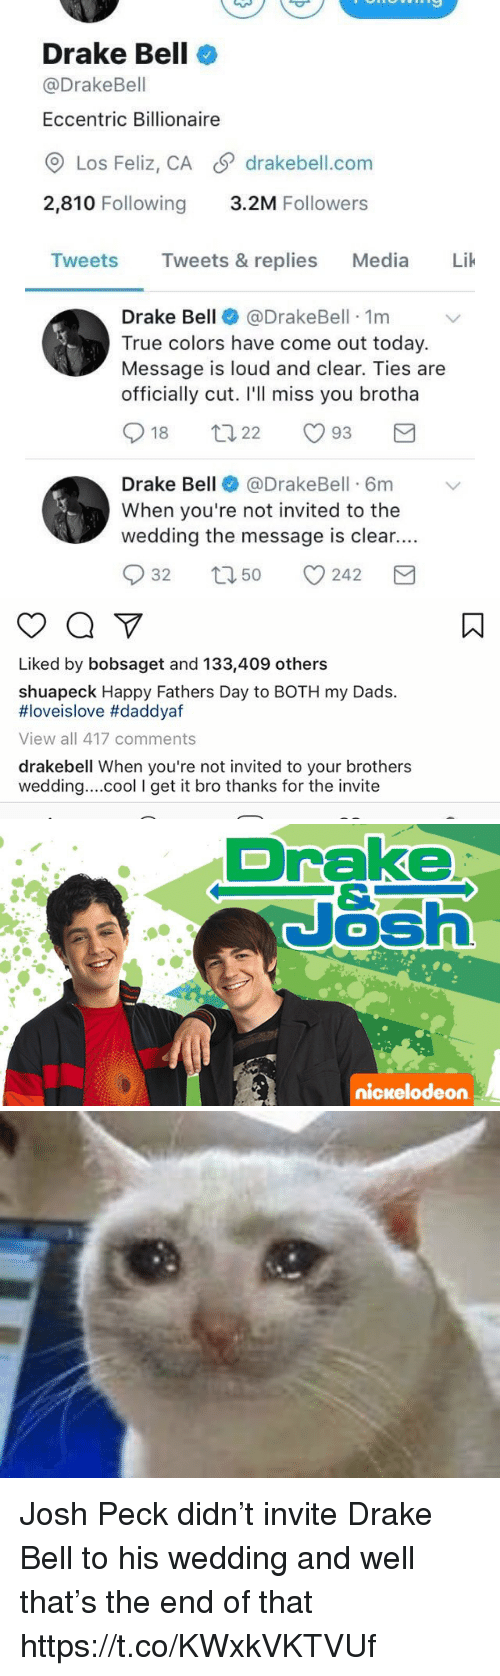 Drake, Drake Bell, and Fathers Day: Drake Bell  @Drake Bell  Eccentric Billionaire  Los Feliz, CA S drakebell.com  2,810 Following  3.2M Followers  Tweets  Tweets & replies  Media  Lik  Drake Bell  @Drake Bell 1m  True colors have come out today.  Message is loud and clear. Ties are  officially cut. I'll miss you brotha  S 18  93  22  Drake Bell  @DrakeBell 6m v  When you're not invited to the  wedding the message is clear.  S 32 t 50  242  M   Liked by bobsaget and 133,409 others  shuapeck Happy Fathers Day to BOTH my Dads.  HIoveislove #daddyaf  View all 417 comments  drakebell When you're not invited to your brothers  wedding... cool l get it  bro thanks for the invite   Drake  Nash  nickelodeon Josh Peck didn't invite Drake Bell to his wedding and well that's the end of that https://t.co/KWxkVKTVUf